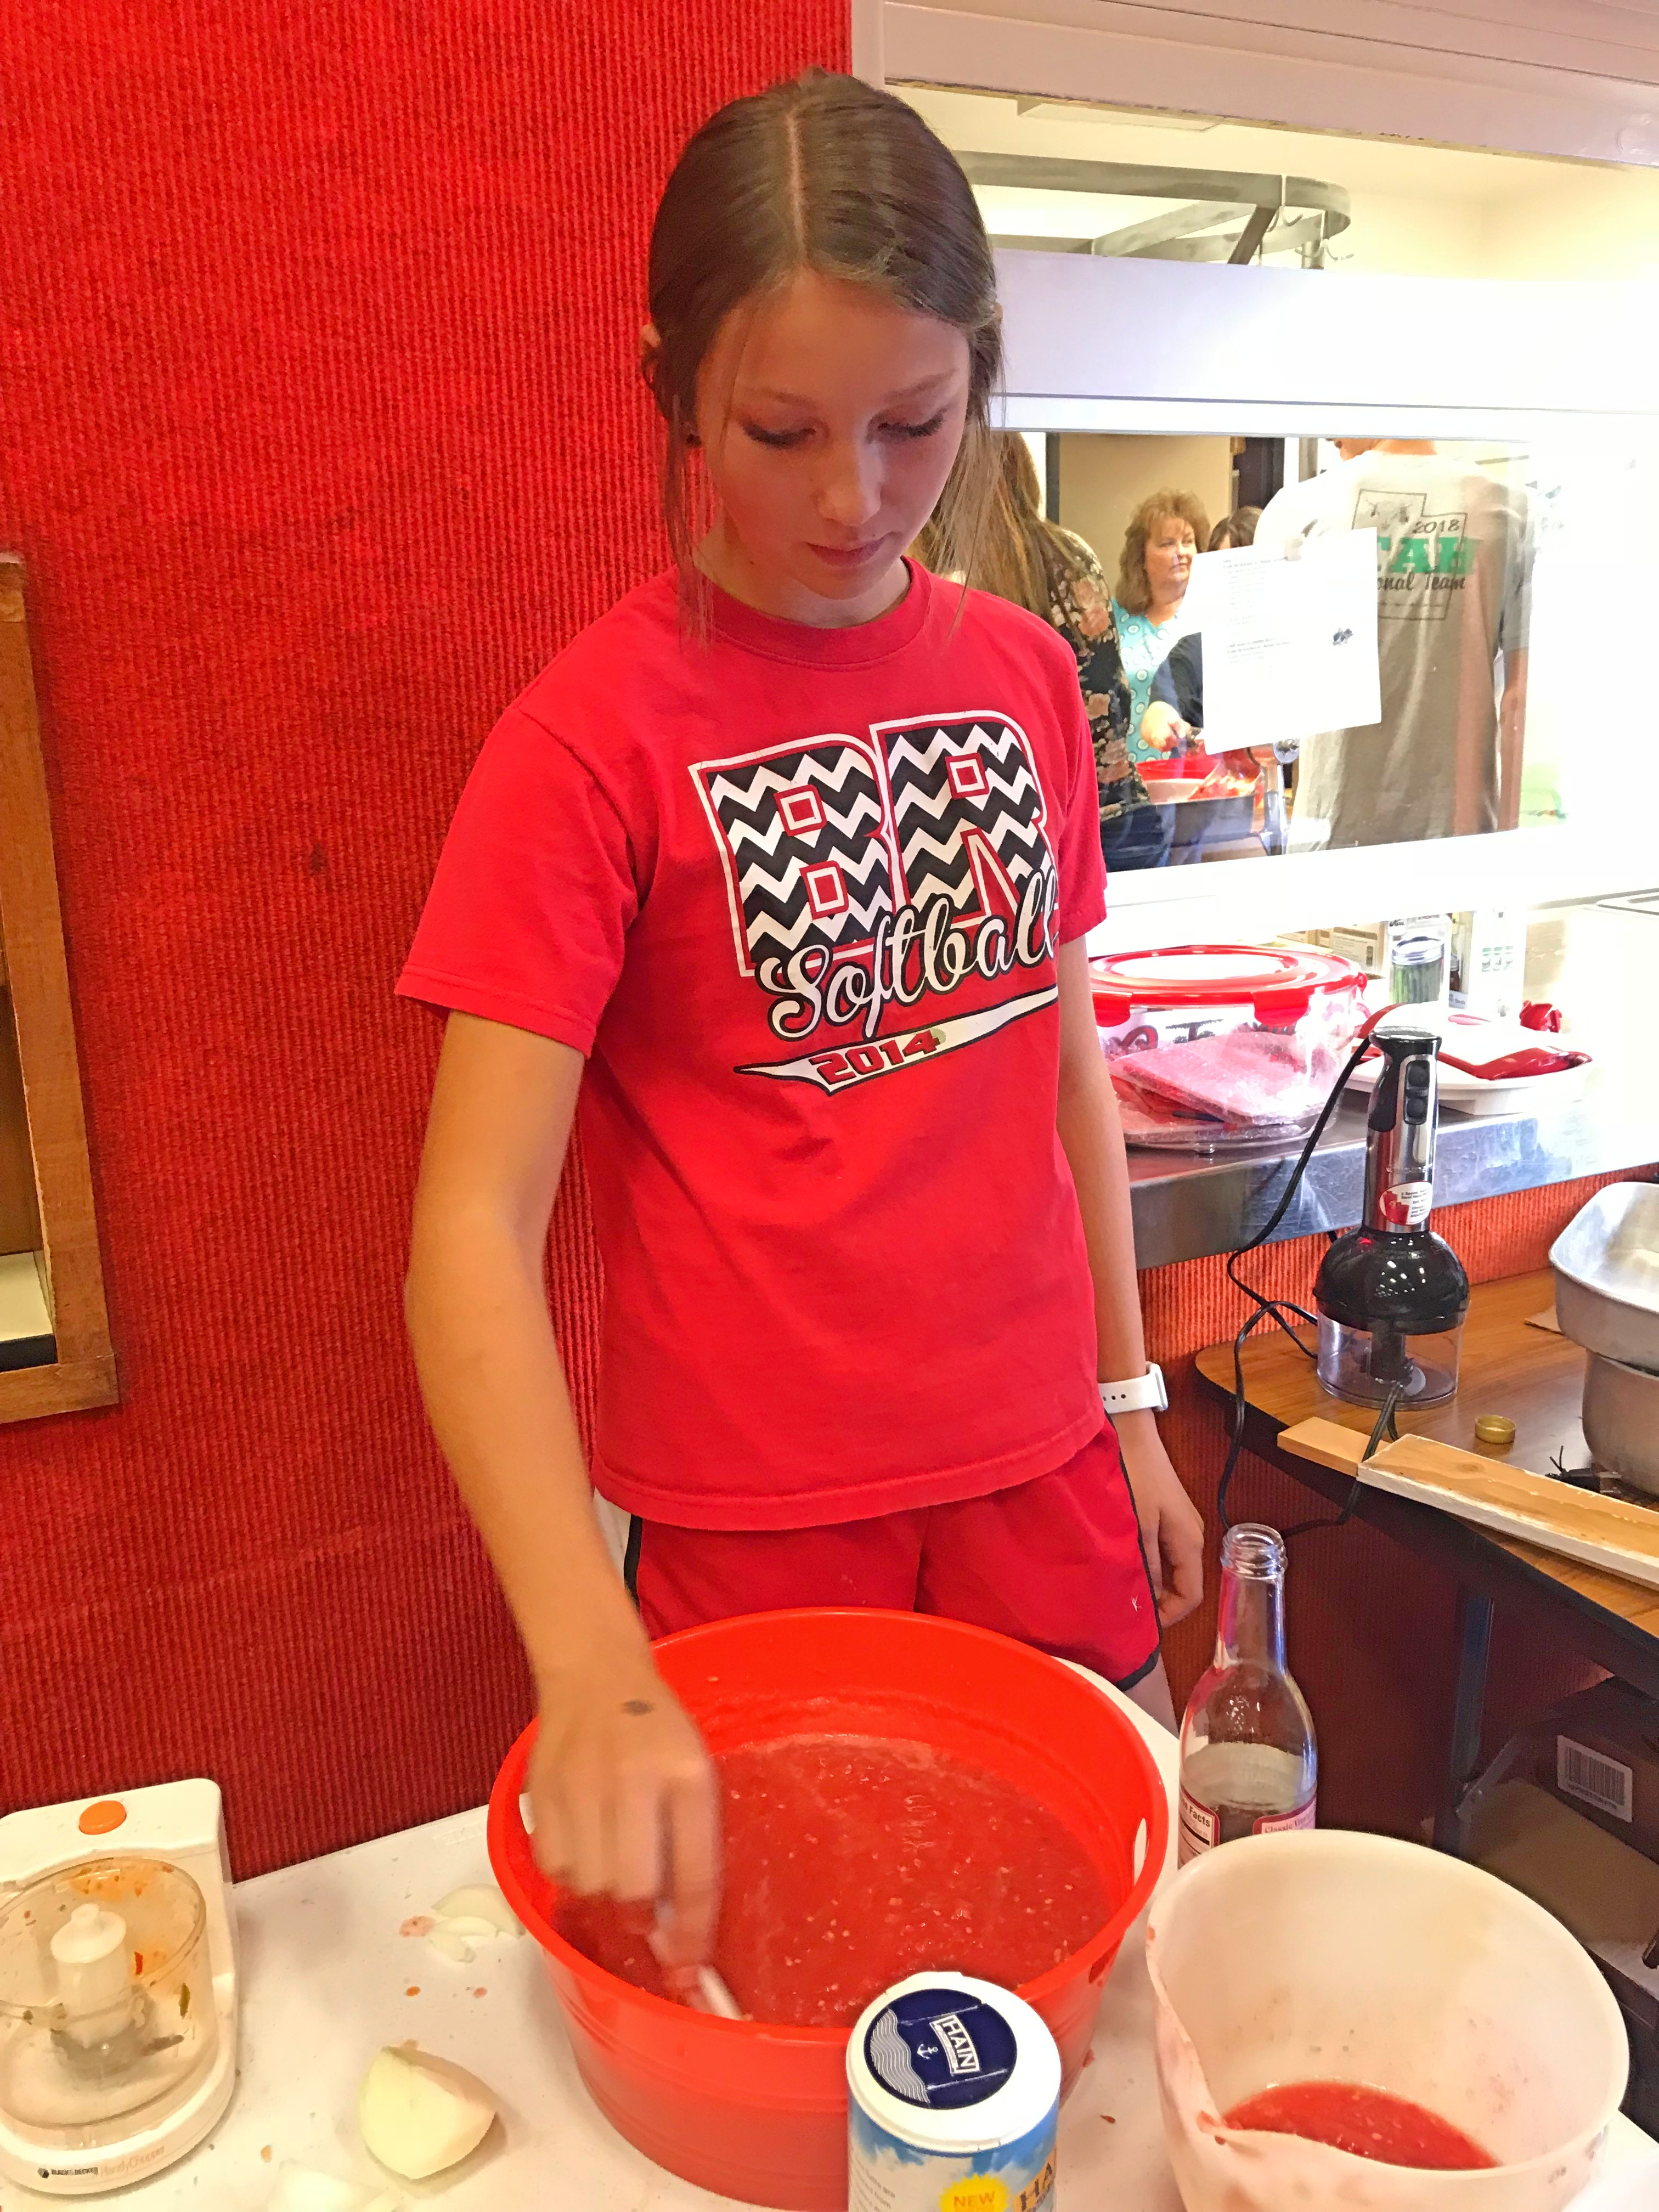 Baylee Sorensen stirs a bowl of salsa before it's canned during a youth canning activity at the Howell Community Center on Saturday, Sept. 8, 2018.